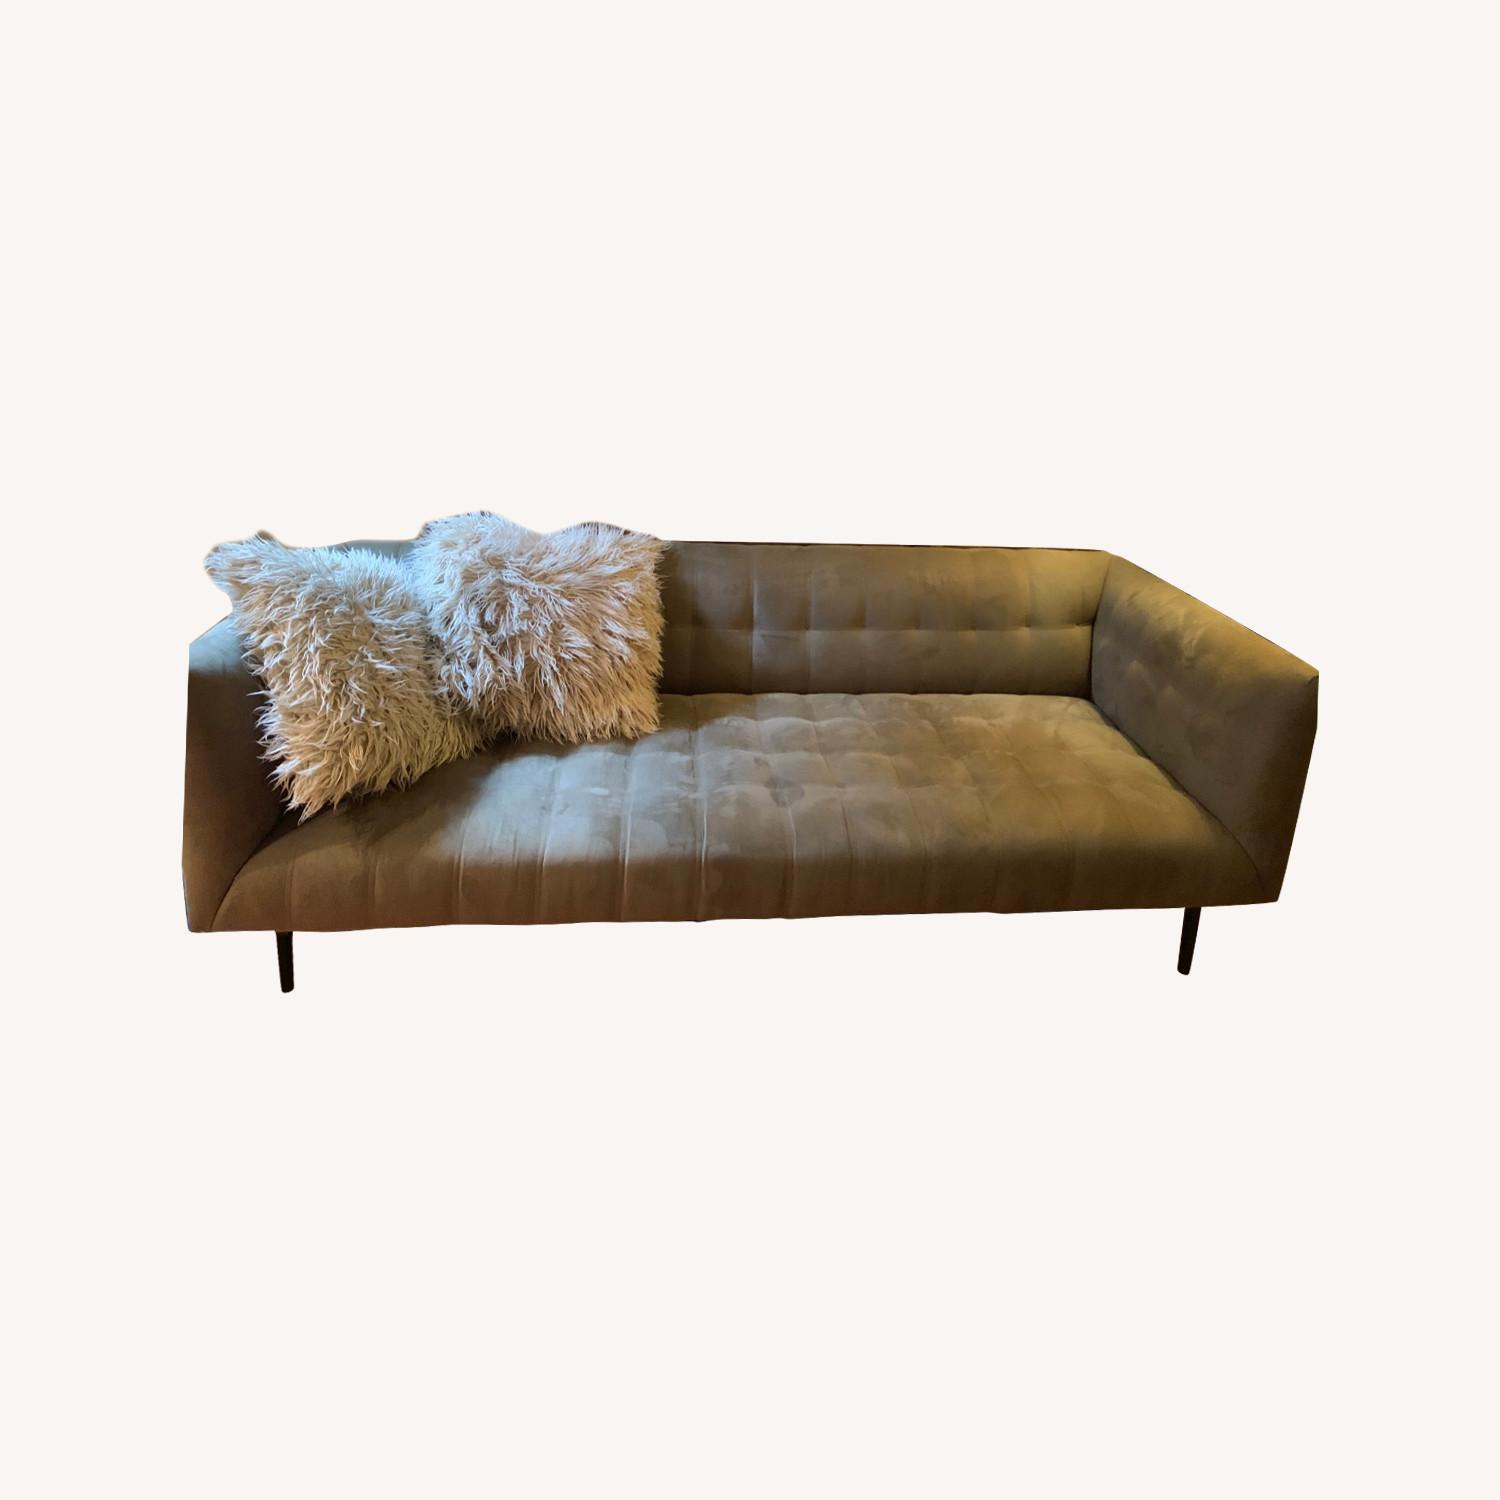 ABC Carpet & Home Microsuede Couch - image-0